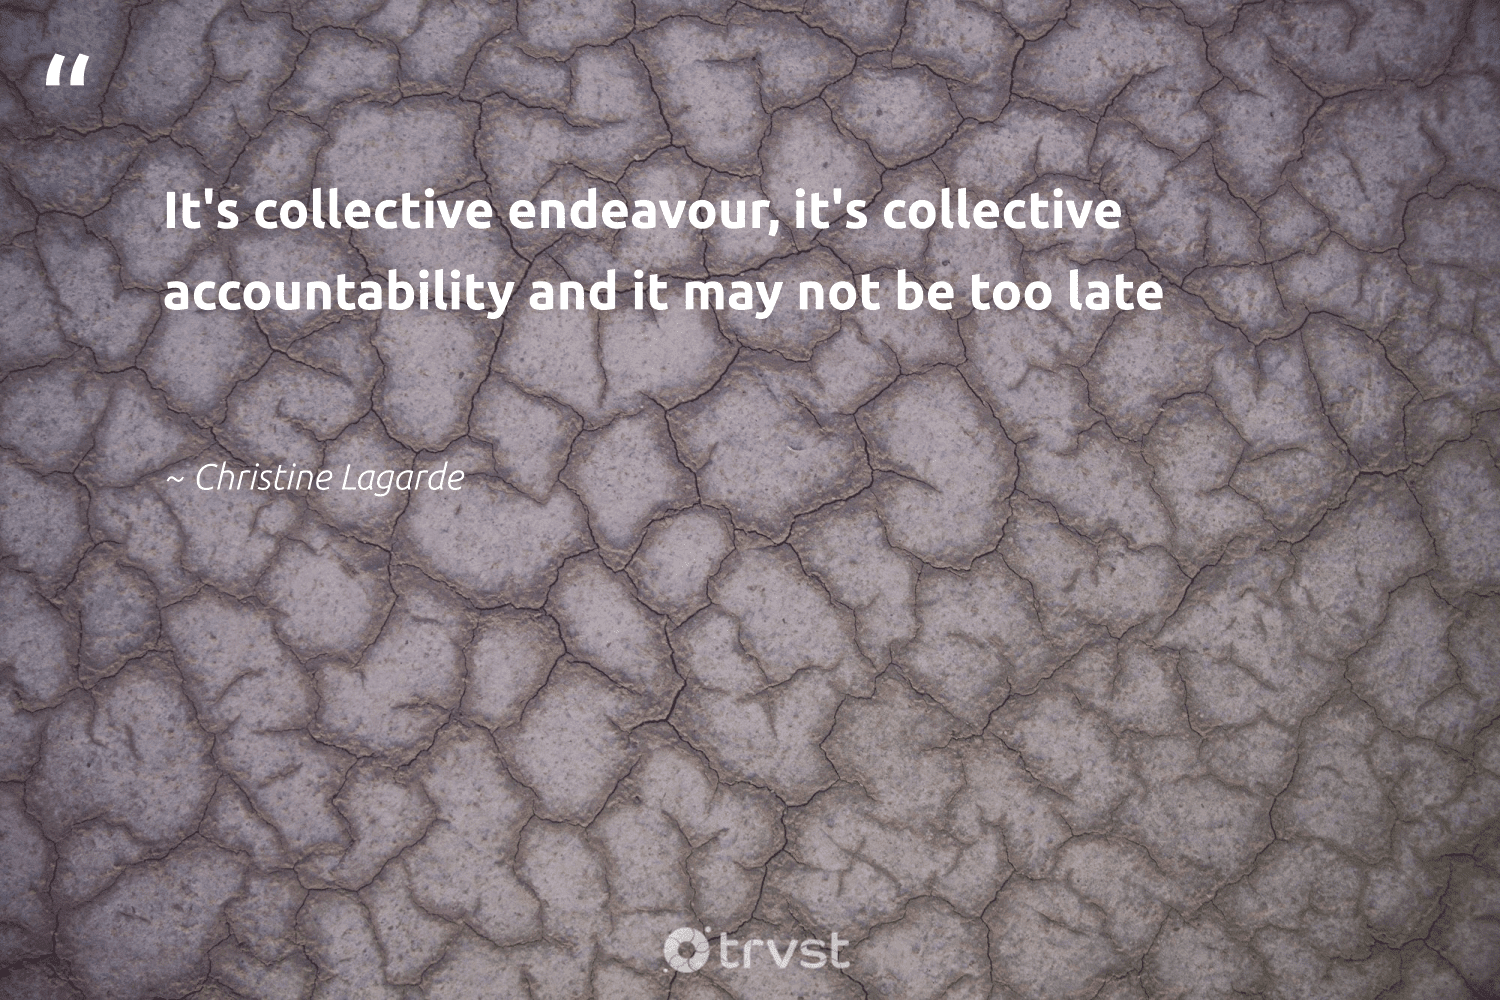 """""""It's collective endeavour, it's collective accountability and it may not be too late""""  - Christine Lagarde  #trvst #quotes #sustainablefutures #socialchange #globalwarming #dosomething #climateaction #impact #climate #dogood #climatechangeisreal #ecoconscious"""